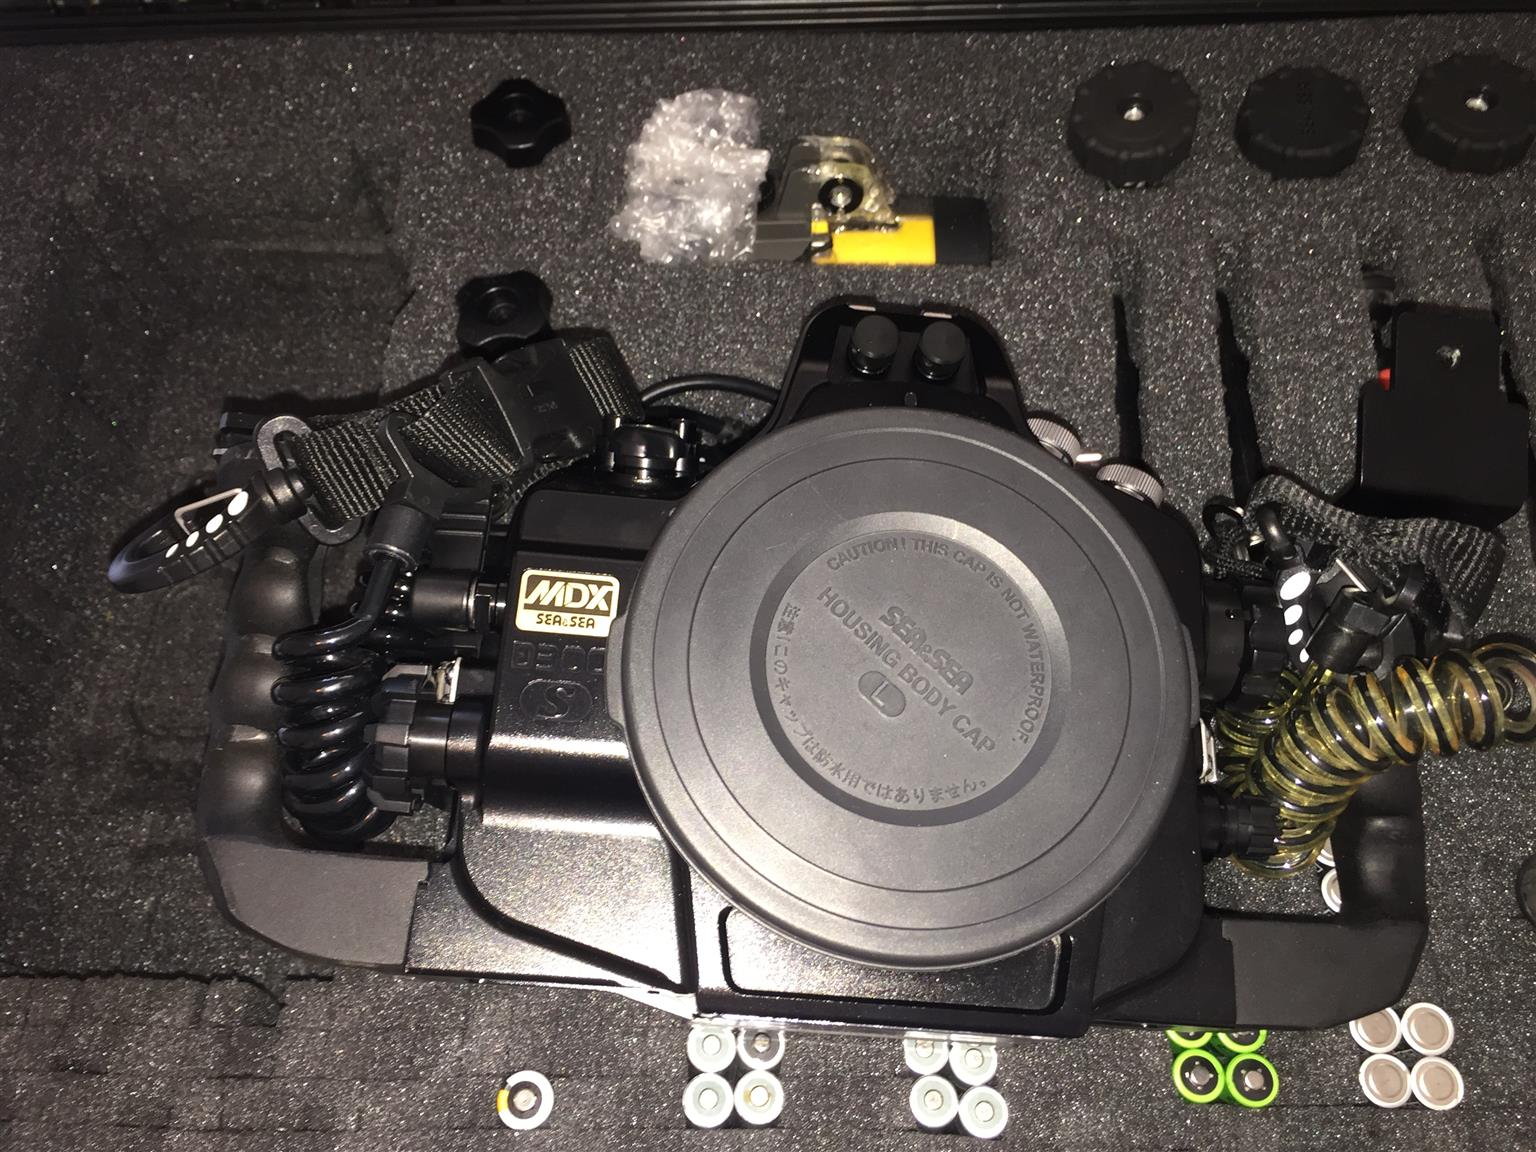 Nikon D300s dive camera with Sea & Sea housing